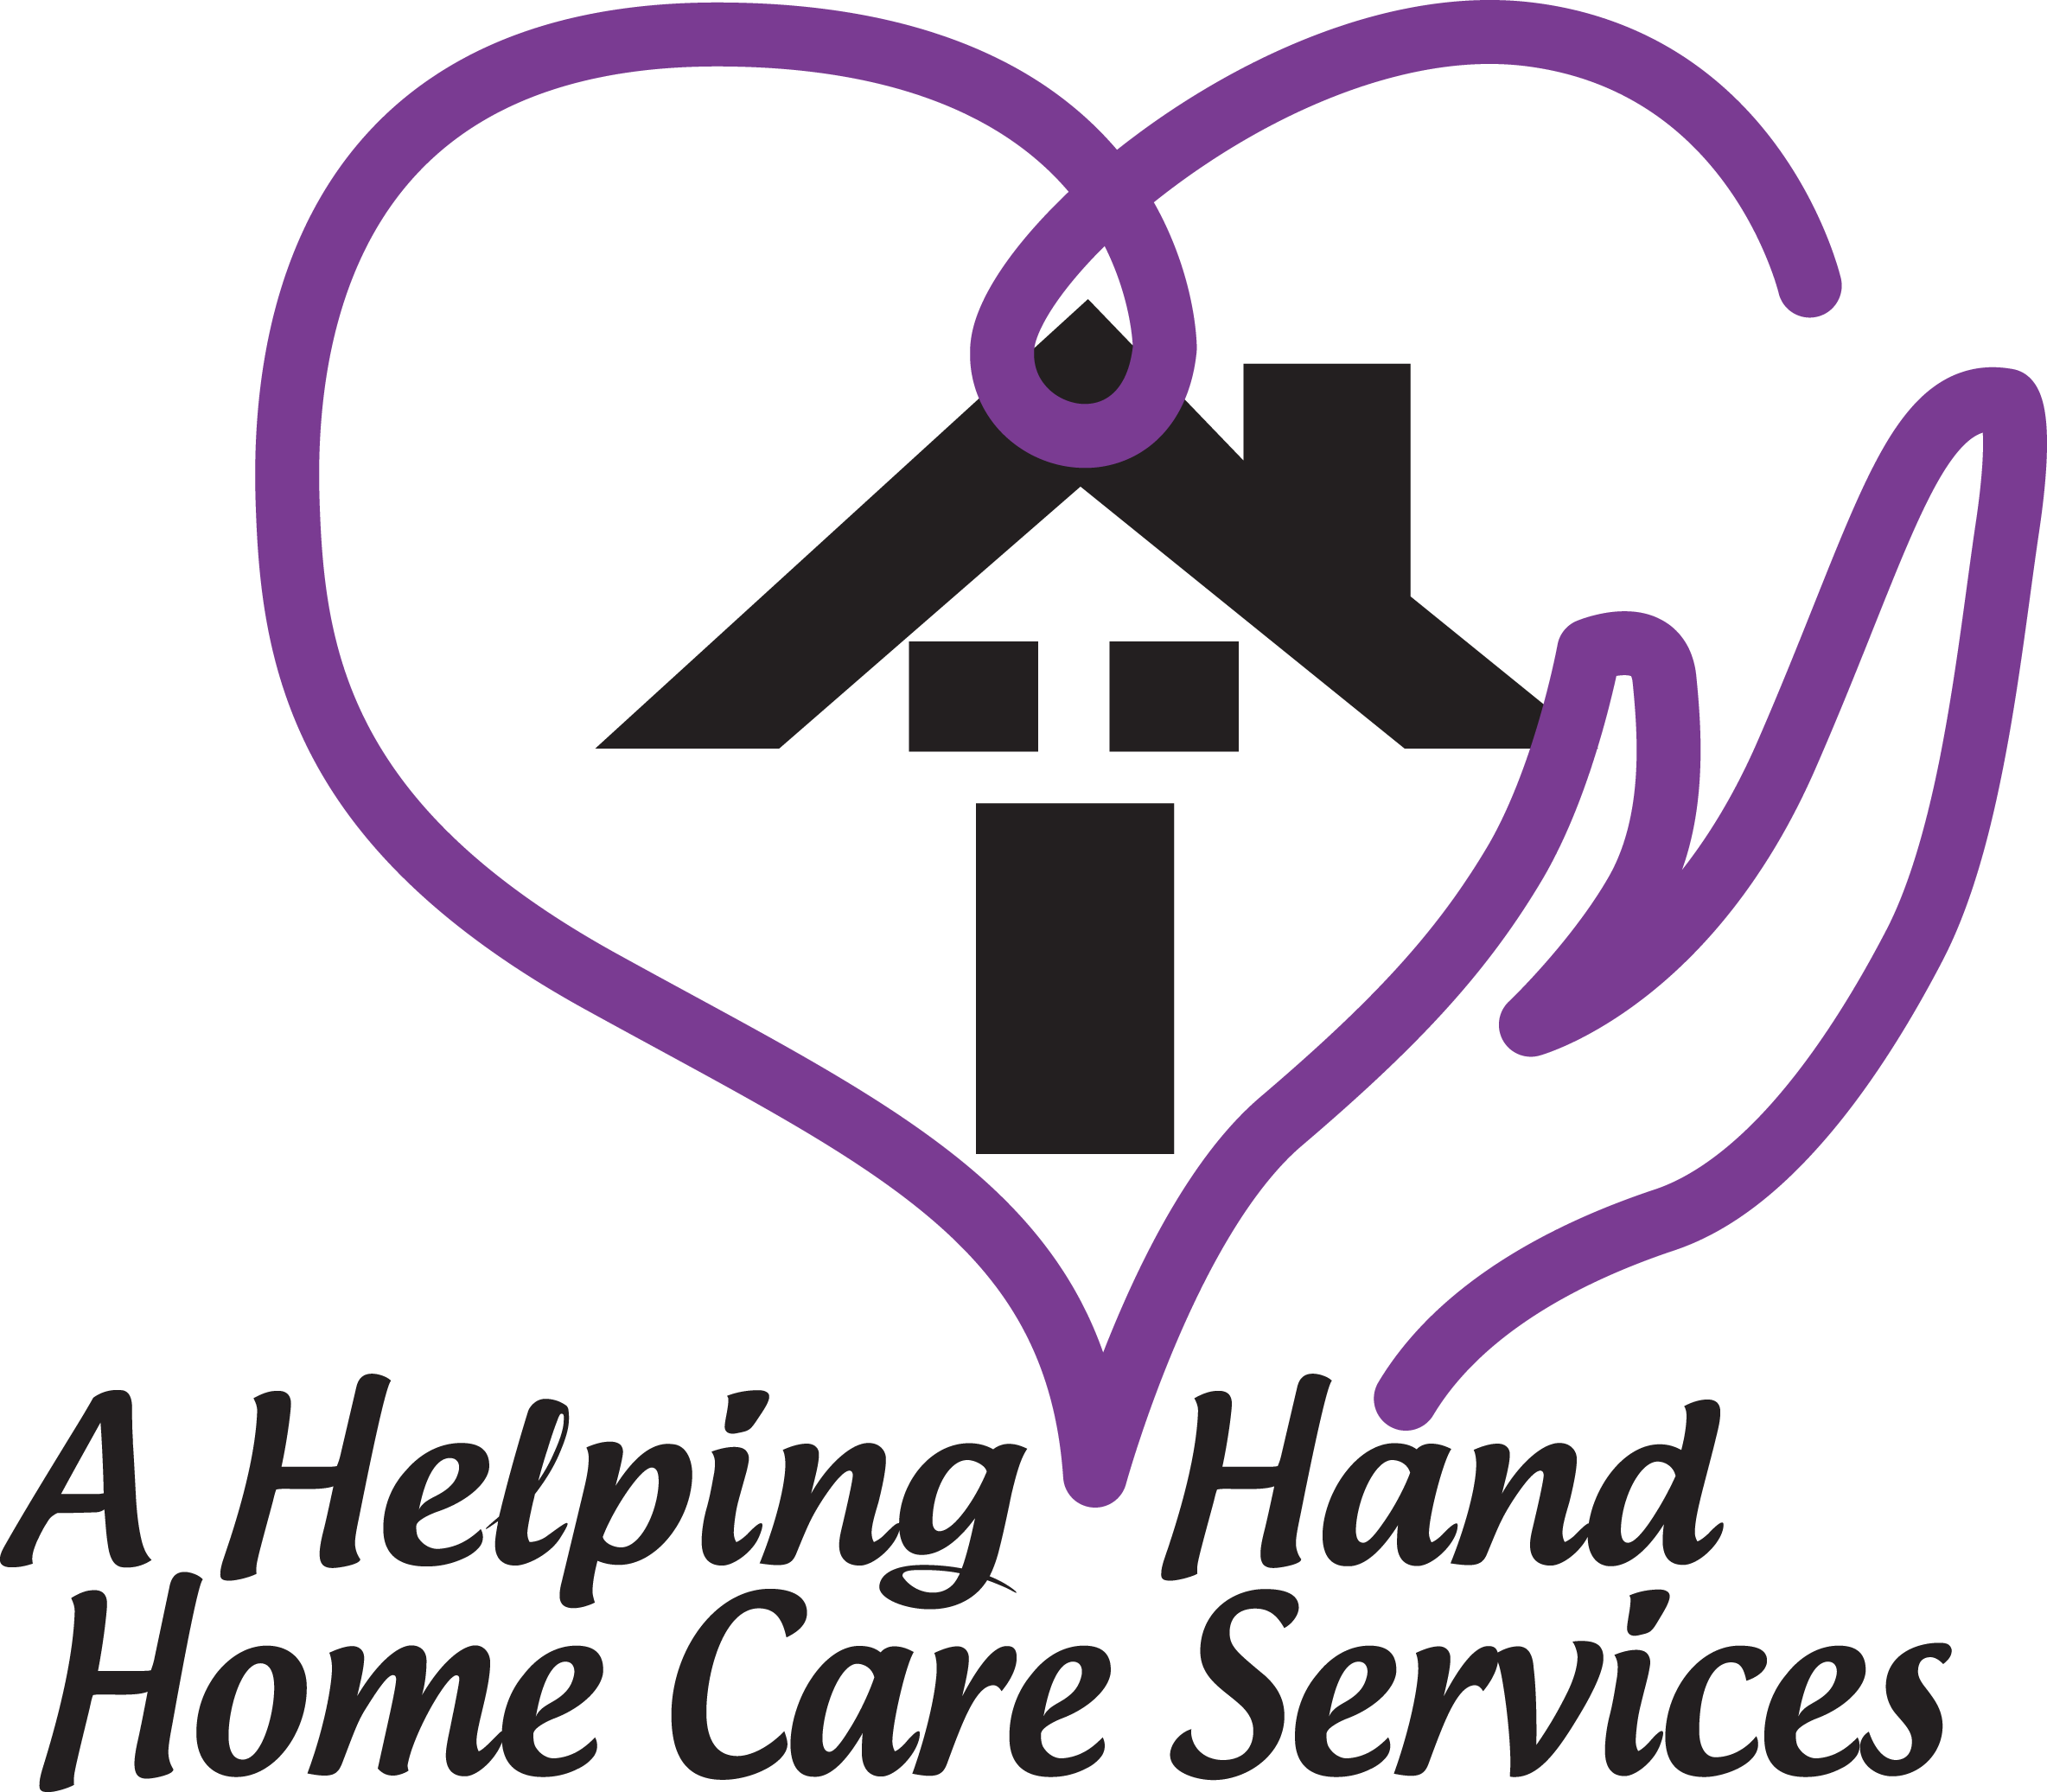 A Helping Hand Home Care Services LLC